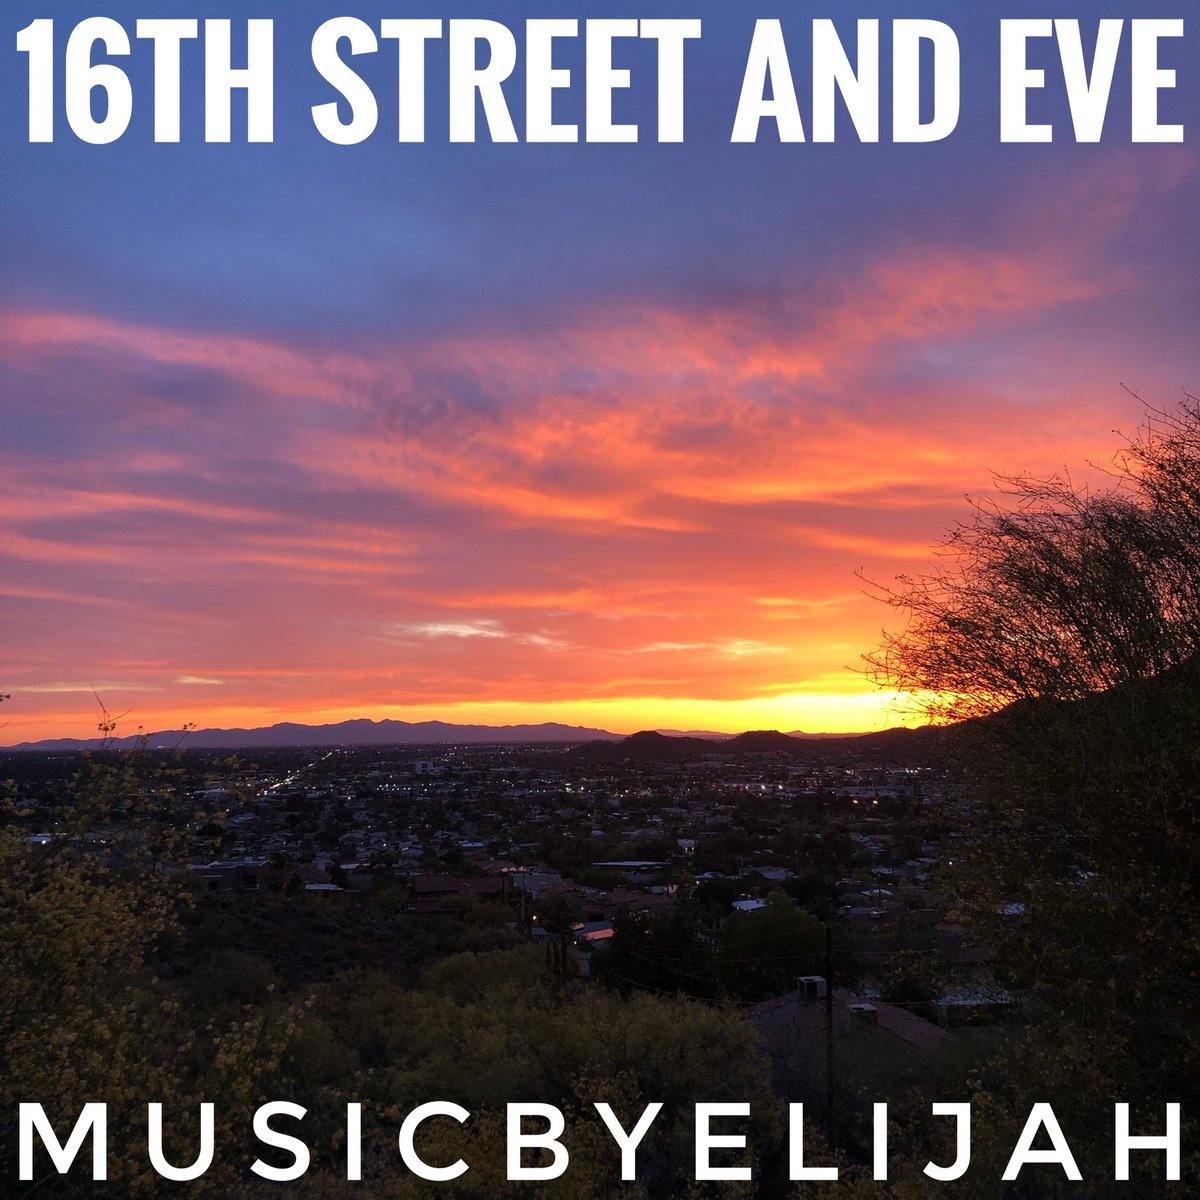 16th Street And Eve OUT NOW  https://t.co/tdJJqUzGCX  #newmusic #music #newalbum #album #piano #vocal #guitar #synth #beat #mixtape #lit #hype #fire #musicproducer #singersongwriter #songwriter #producer #record #recording #time #azmusic #arizona #phoenix #love #sing #voice https://t.co/zoditCr8ev